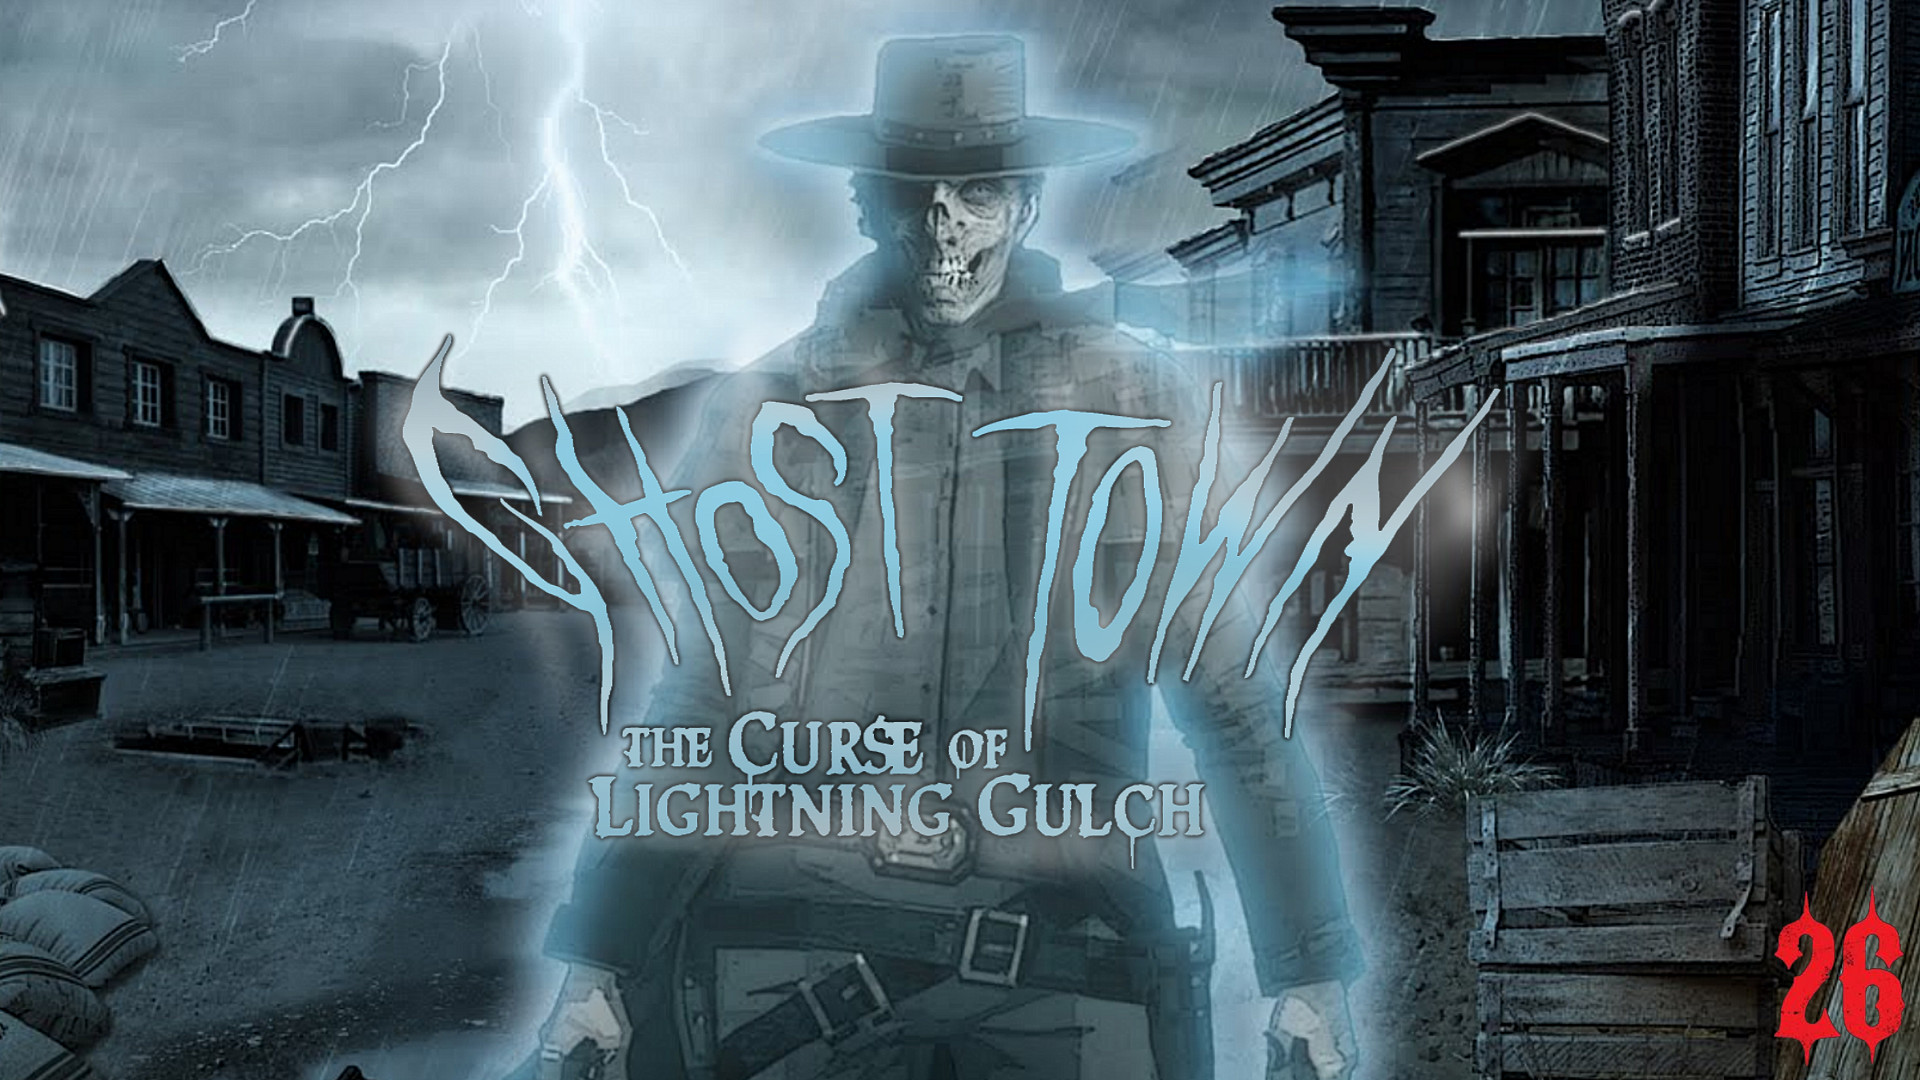 Res: 1920x1080, Ghost Town 2 Wallpaper